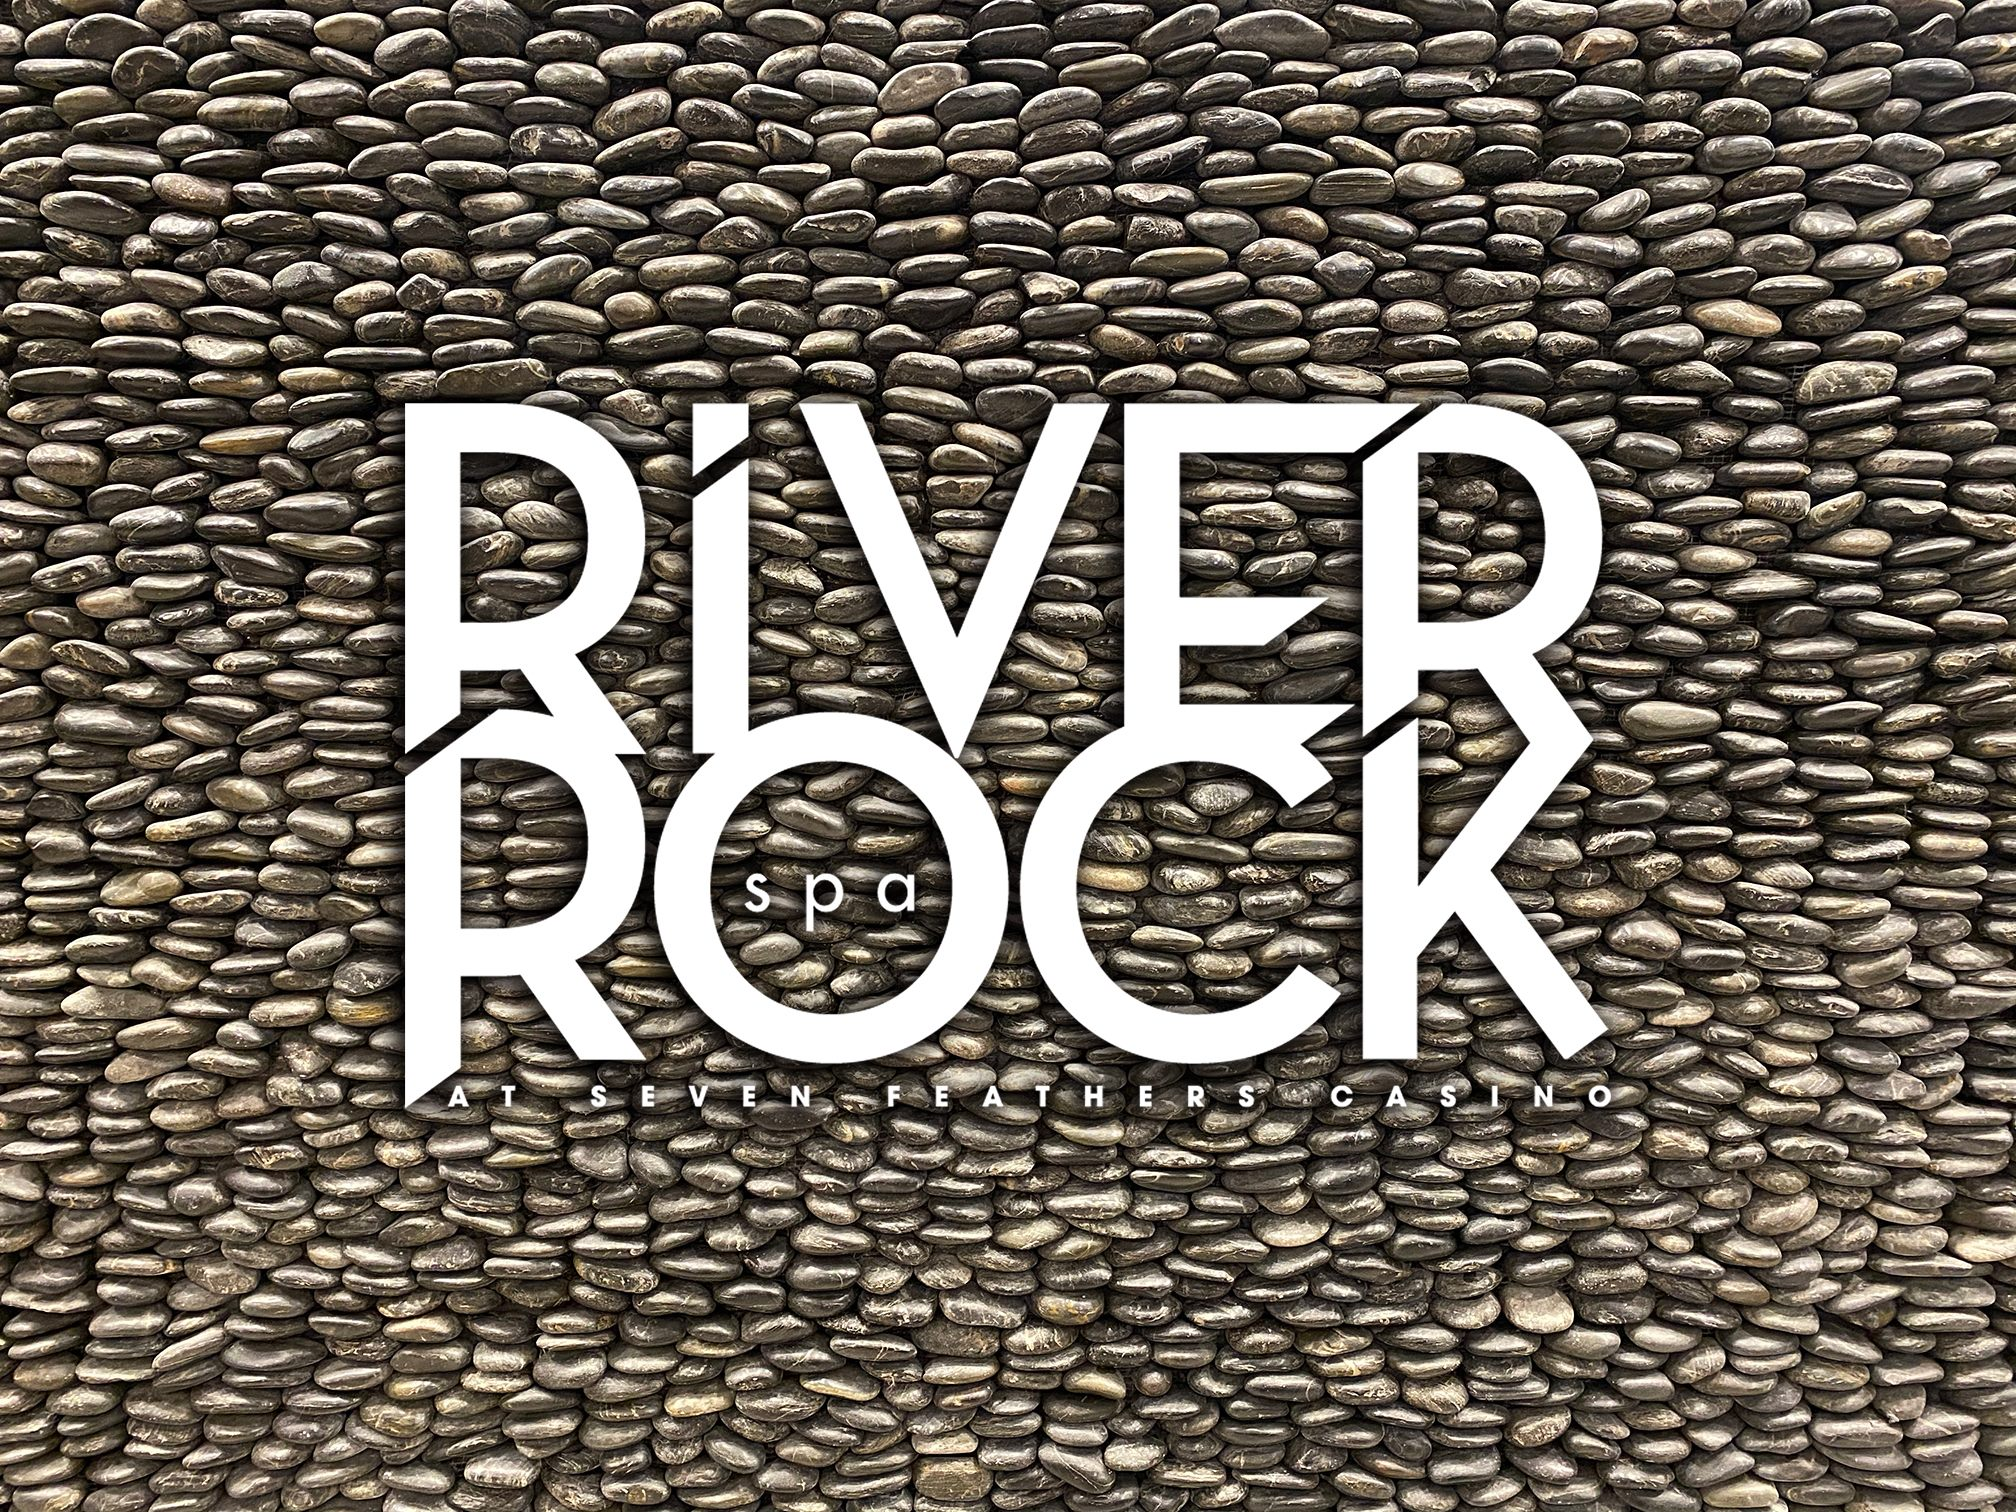 Experience The Updated River Rock Spa At Seven Feathers Casino Resort In Canyonville Oregon